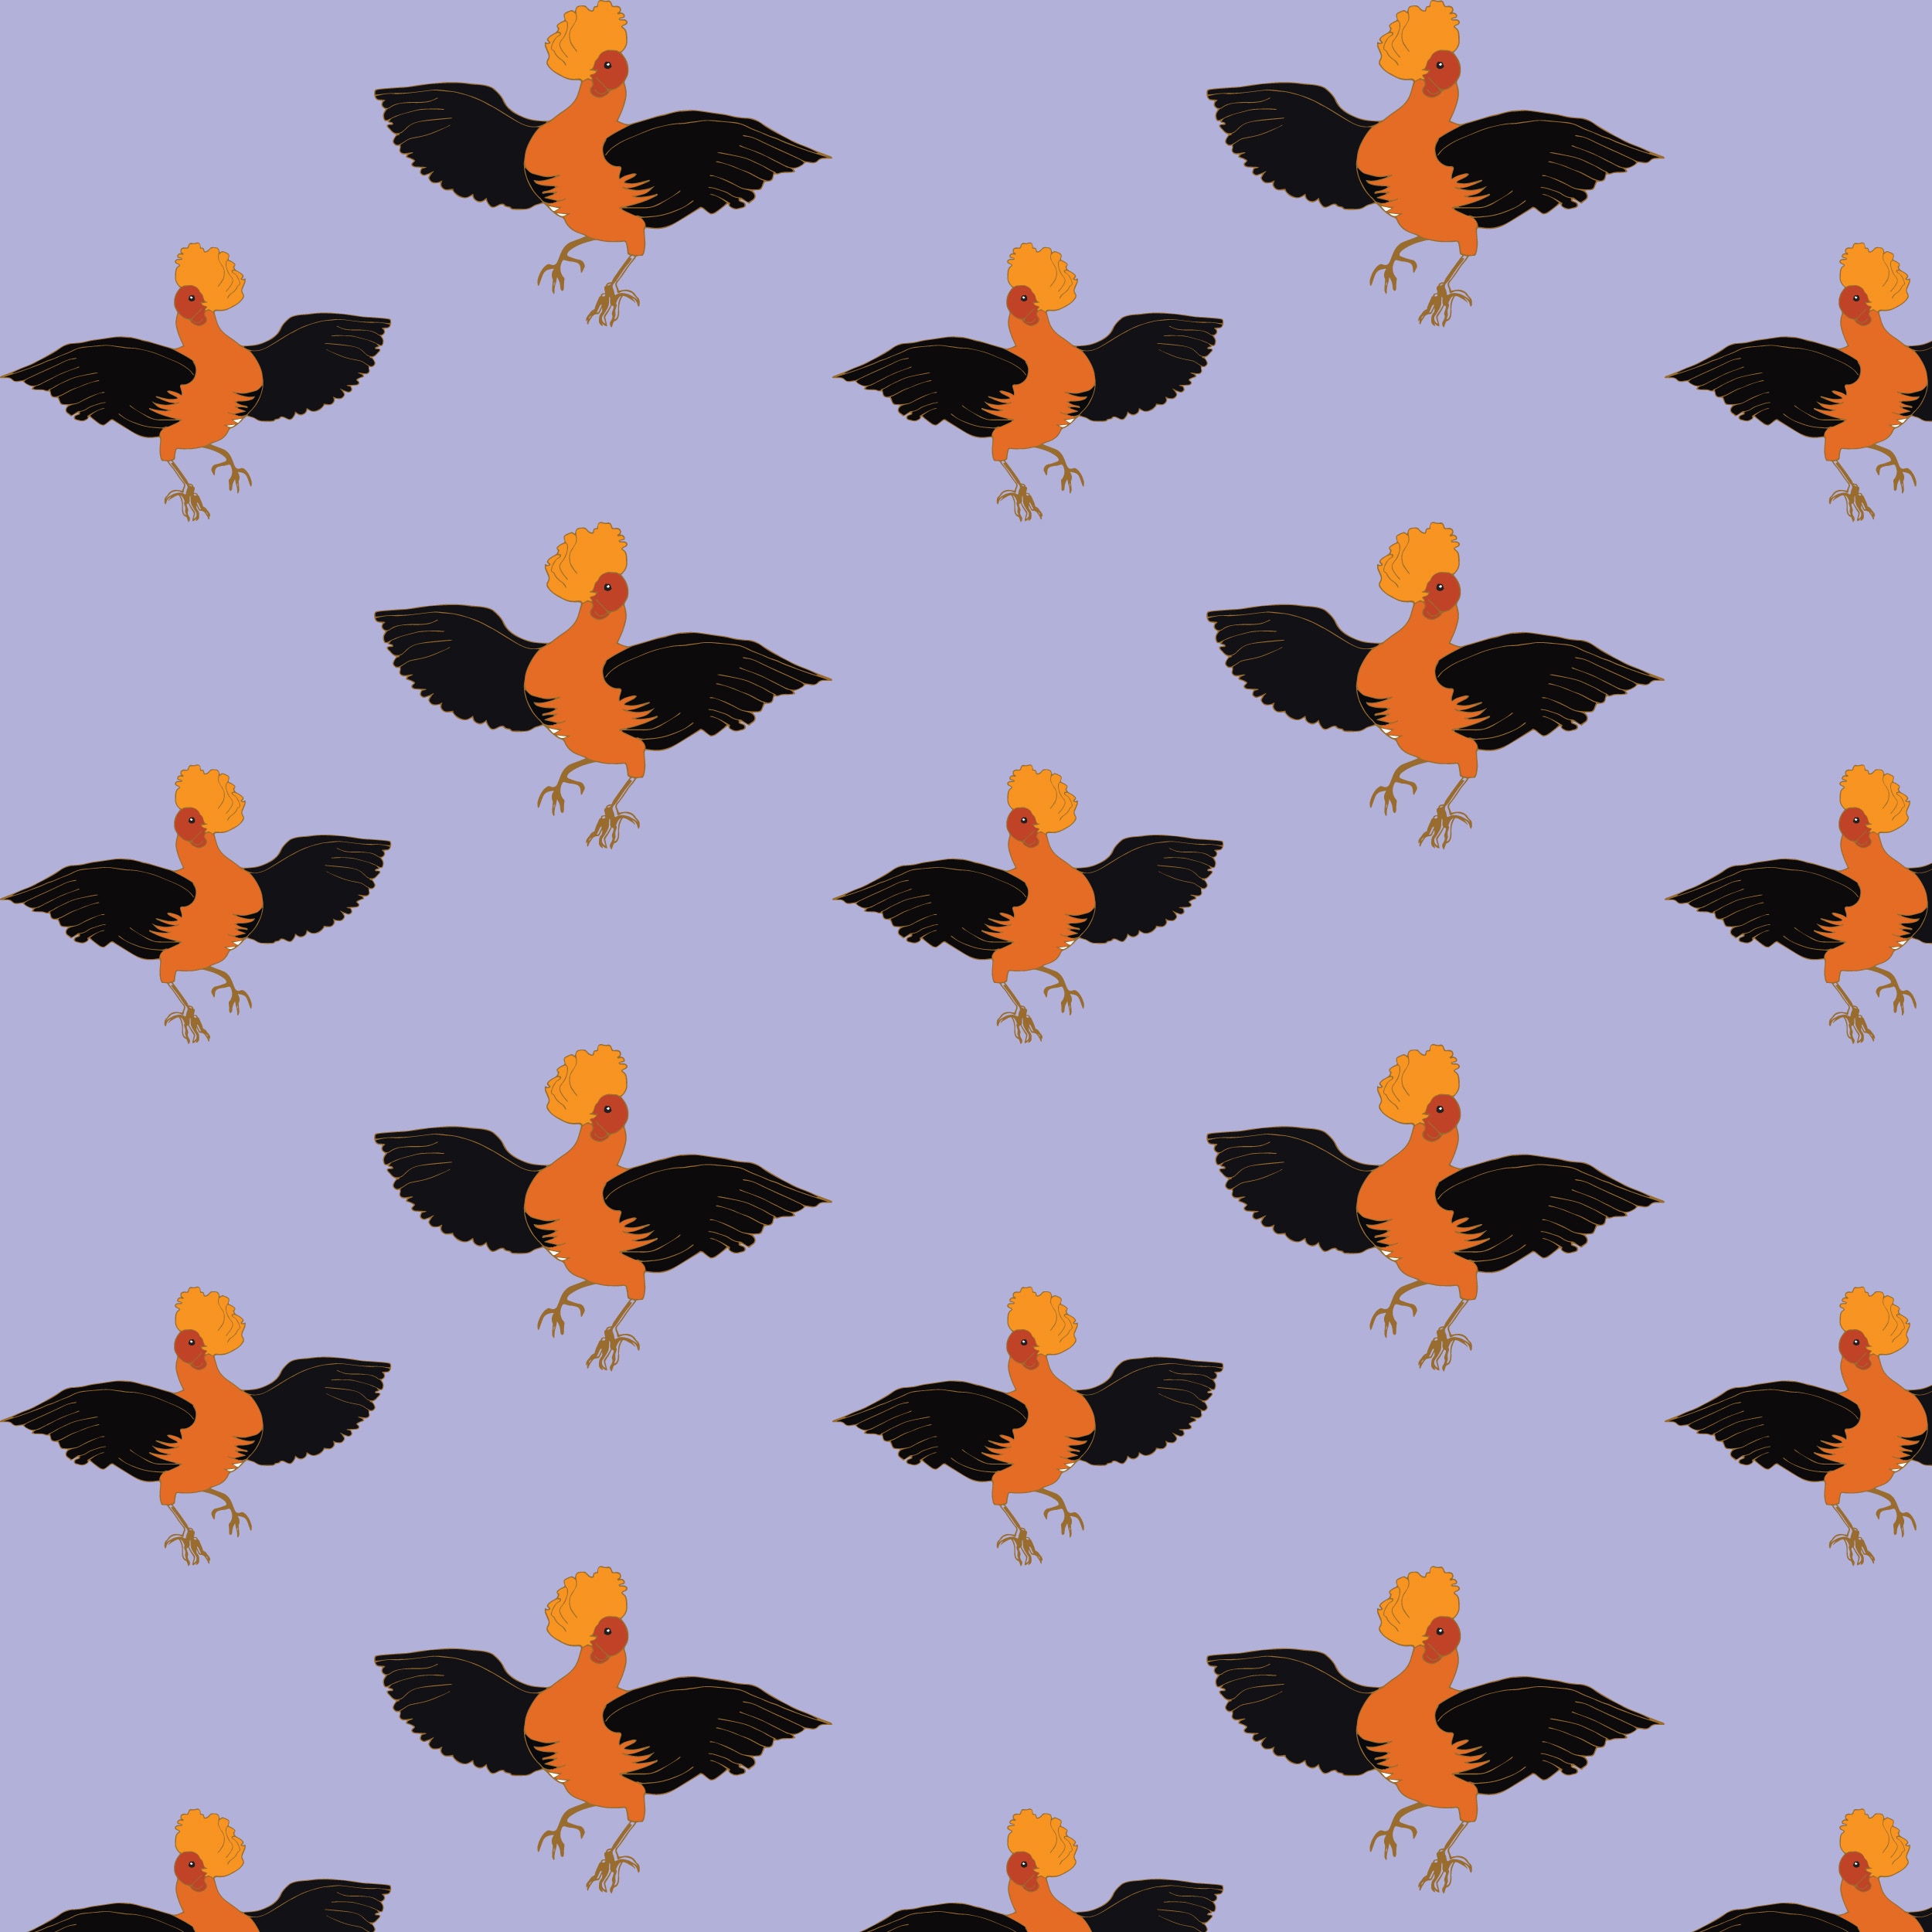 Fantasy Patterns with Birds example image 2